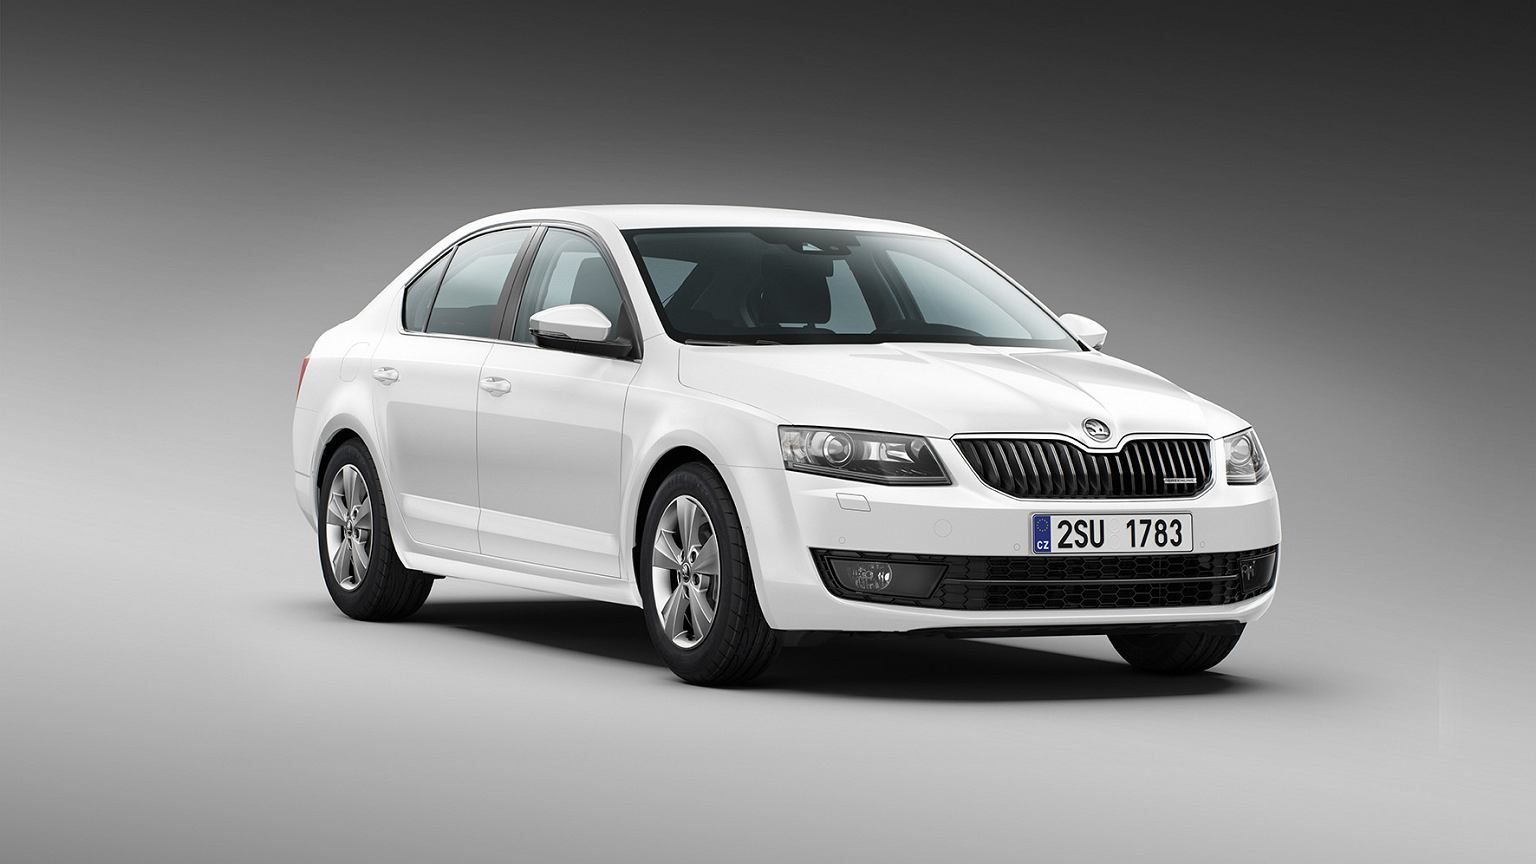 skoda octavia iii greenline. Black Bedroom Furniture Sets. Home Design Ideas